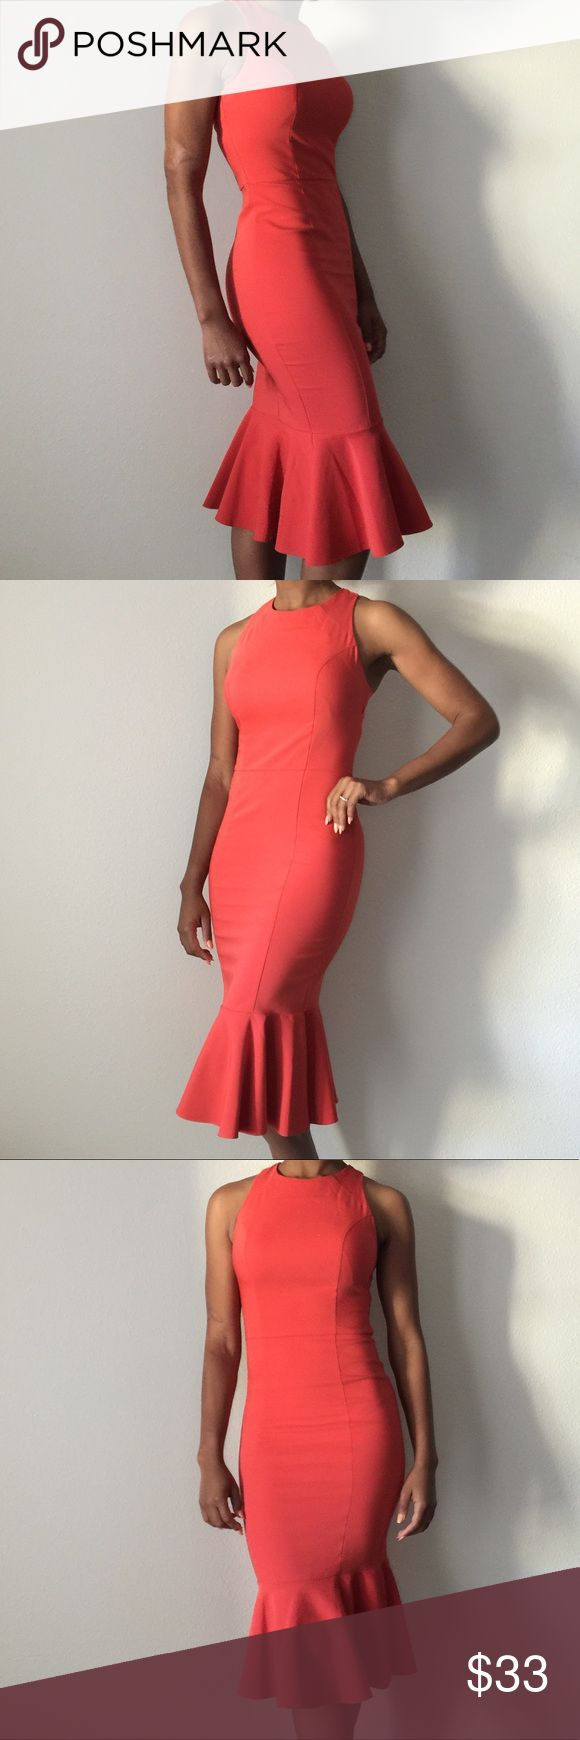 ASOS Tall burnt orange dress A great party dress or date night dress. It is a size 2 Tall. Asos Dresses Midi